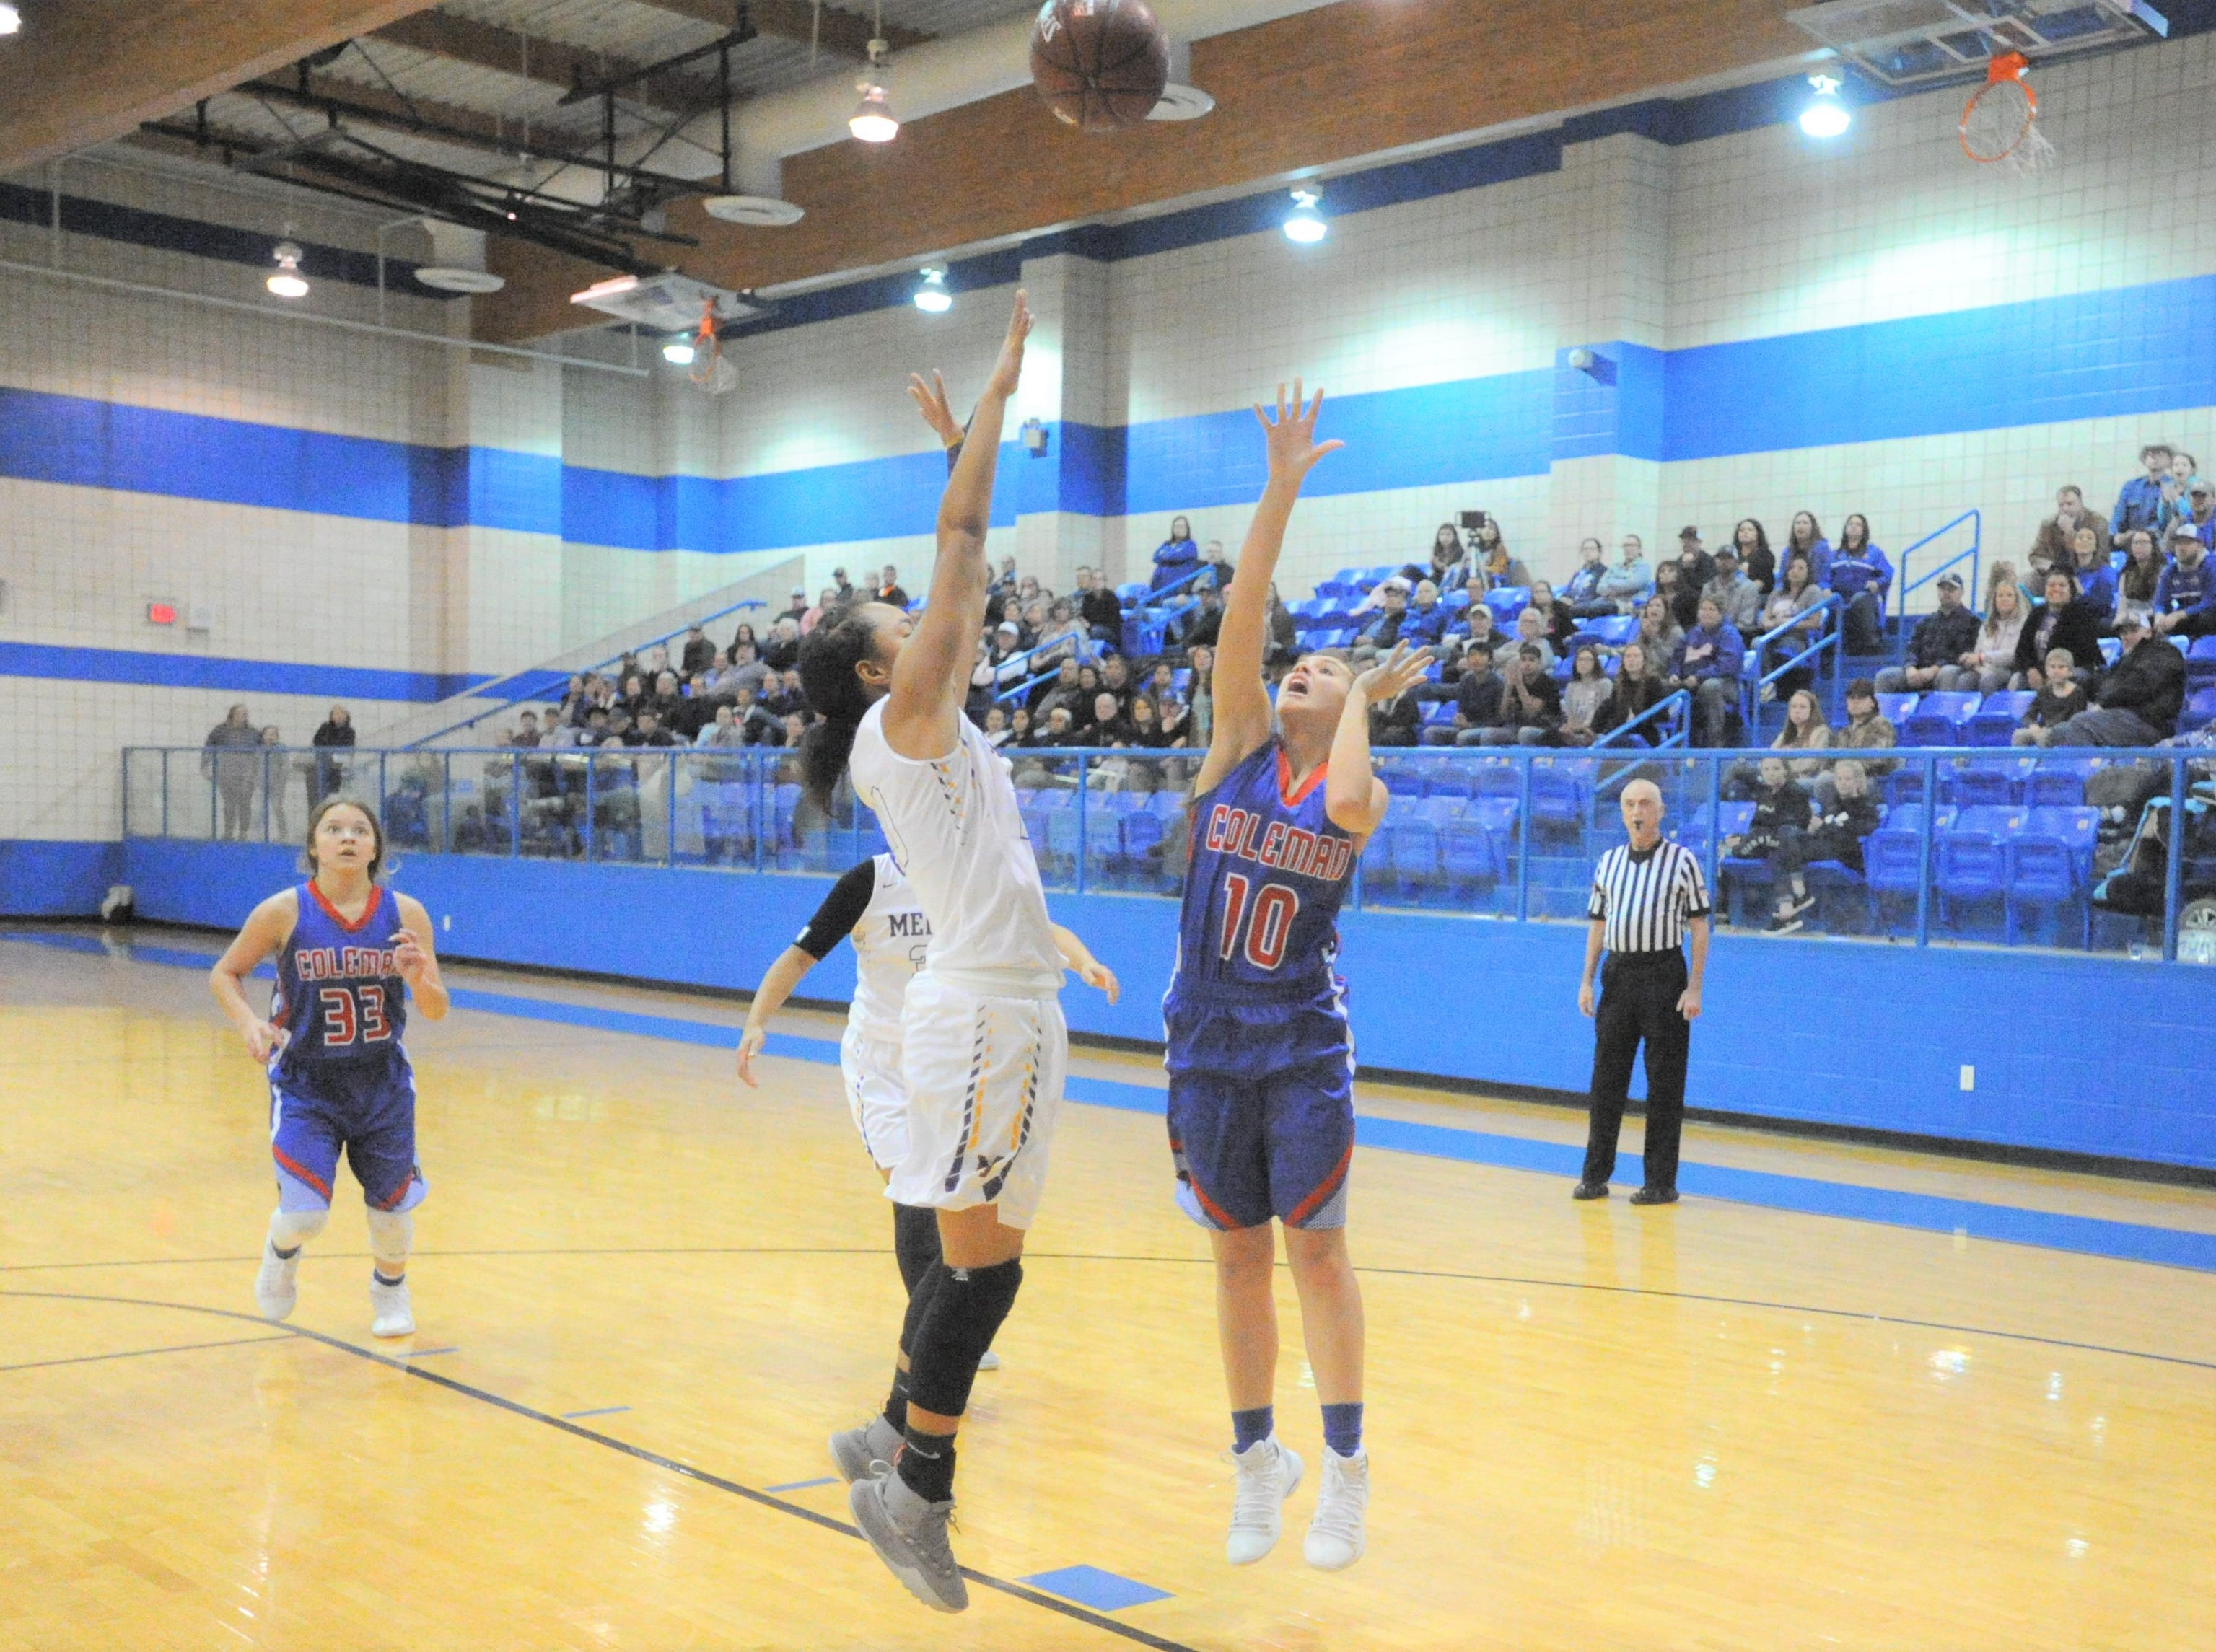 Coleman's Kelly Hale lofts a shot over Merkel's Alyssa White in a bi-district playoff at Winters High School on Monday, Feb. 11, 2019.